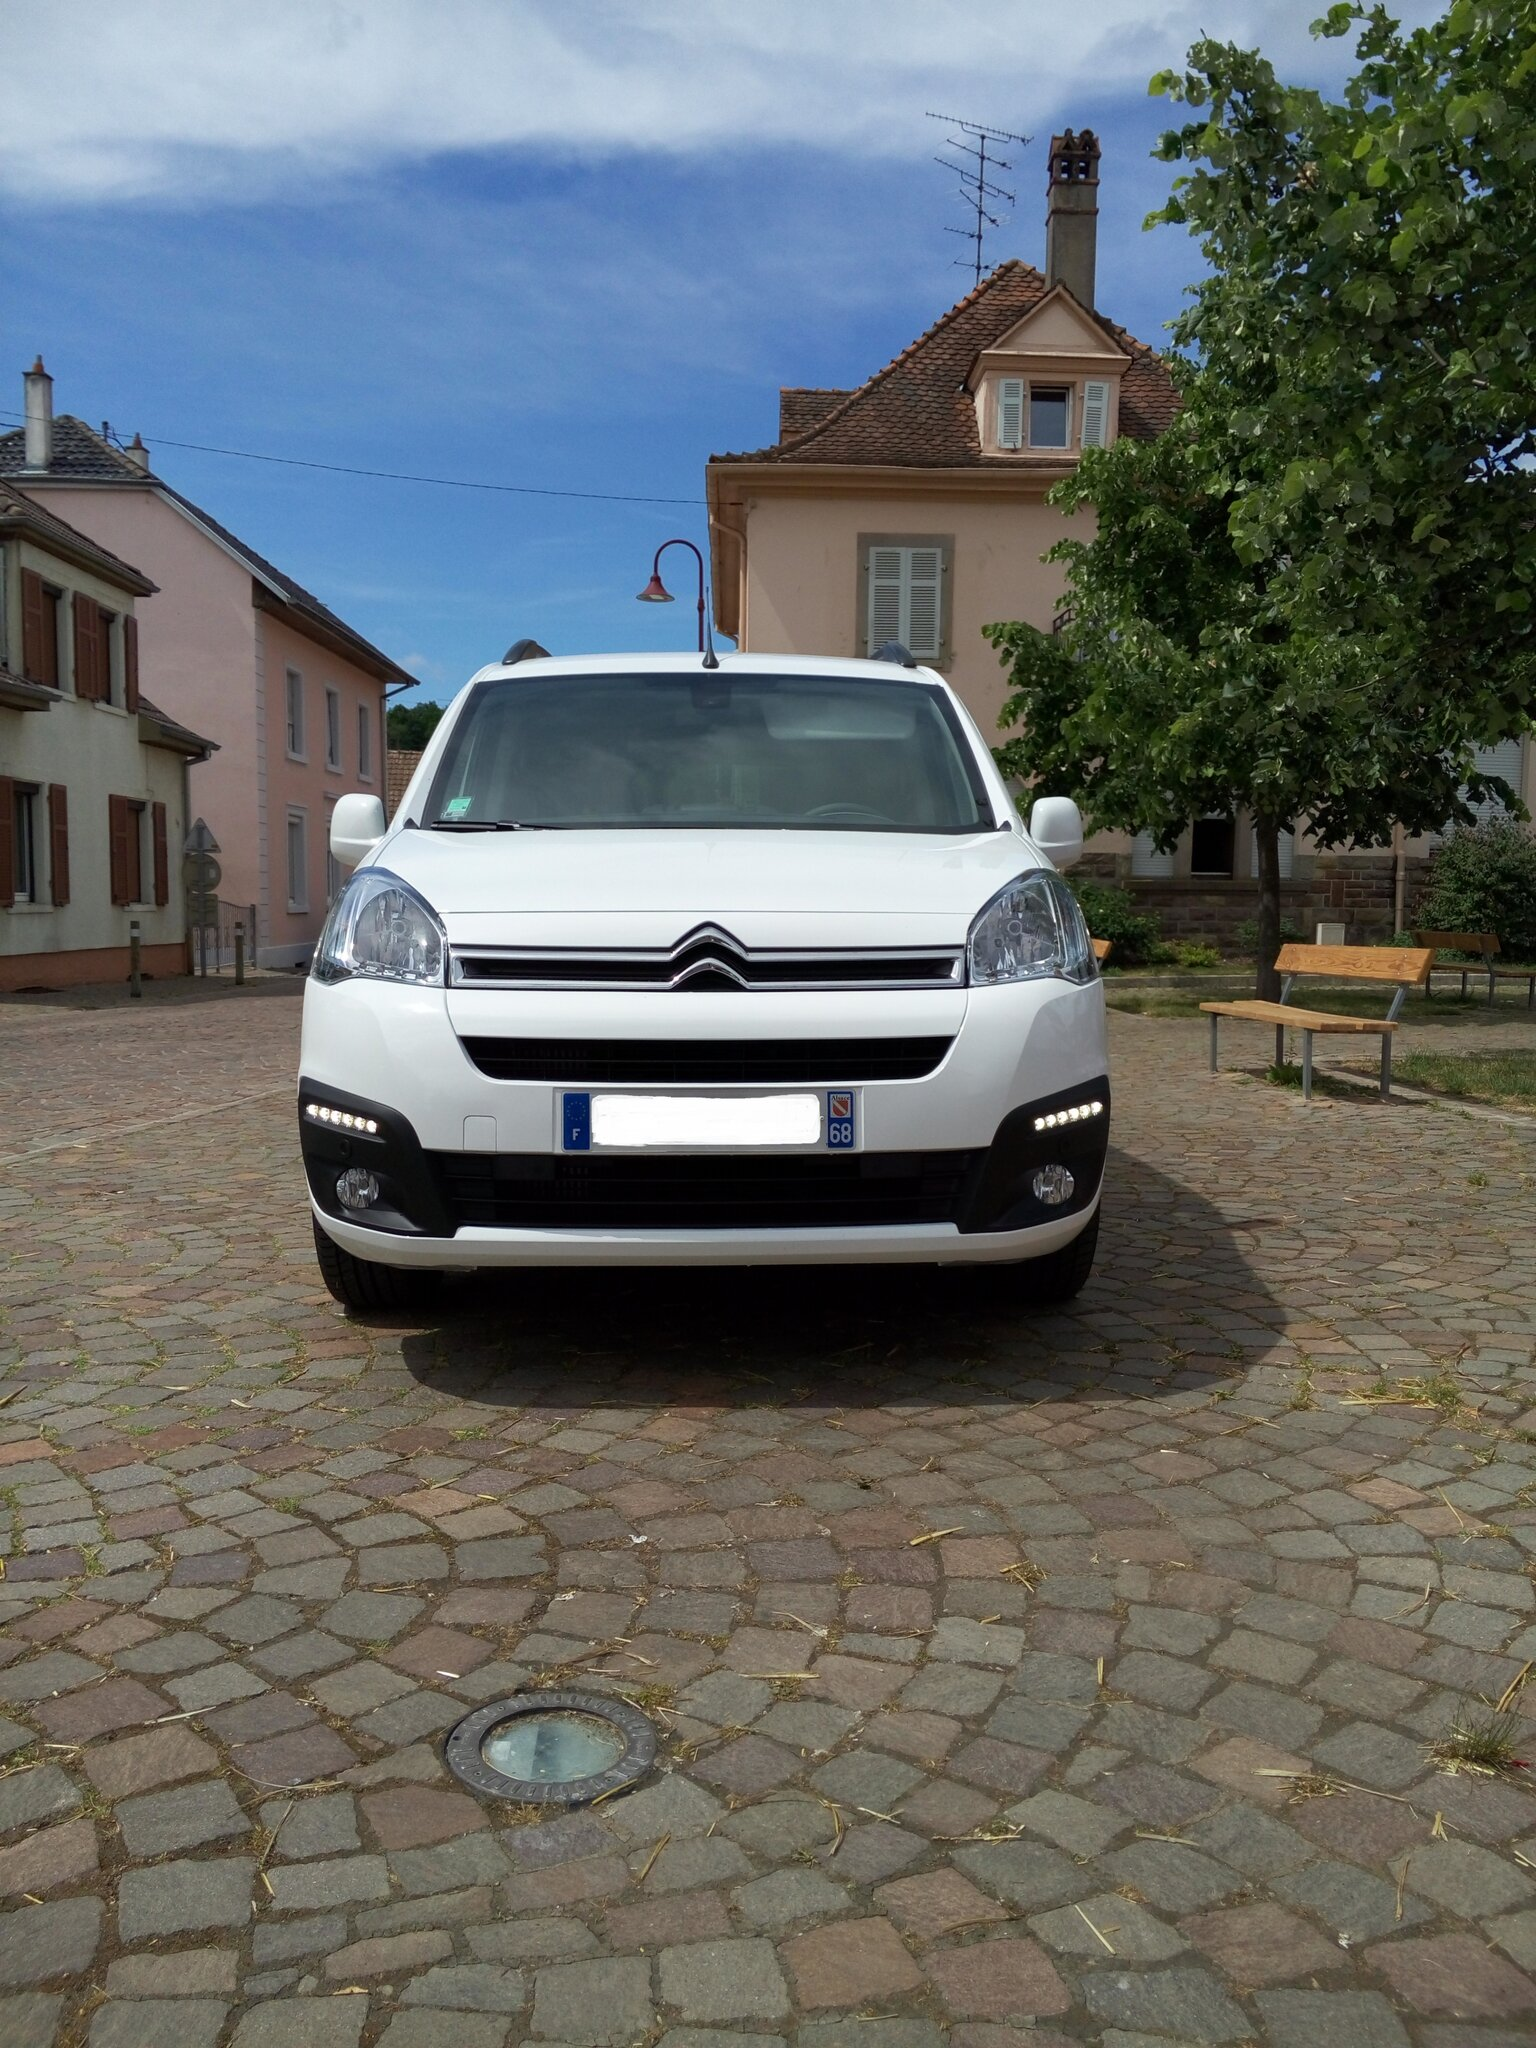 collaborateur vends nouveau citroen berlingo multispace shine bluehdi 120cv 7 places. Black Bedroom Furniture Sets. Home Design Ideas